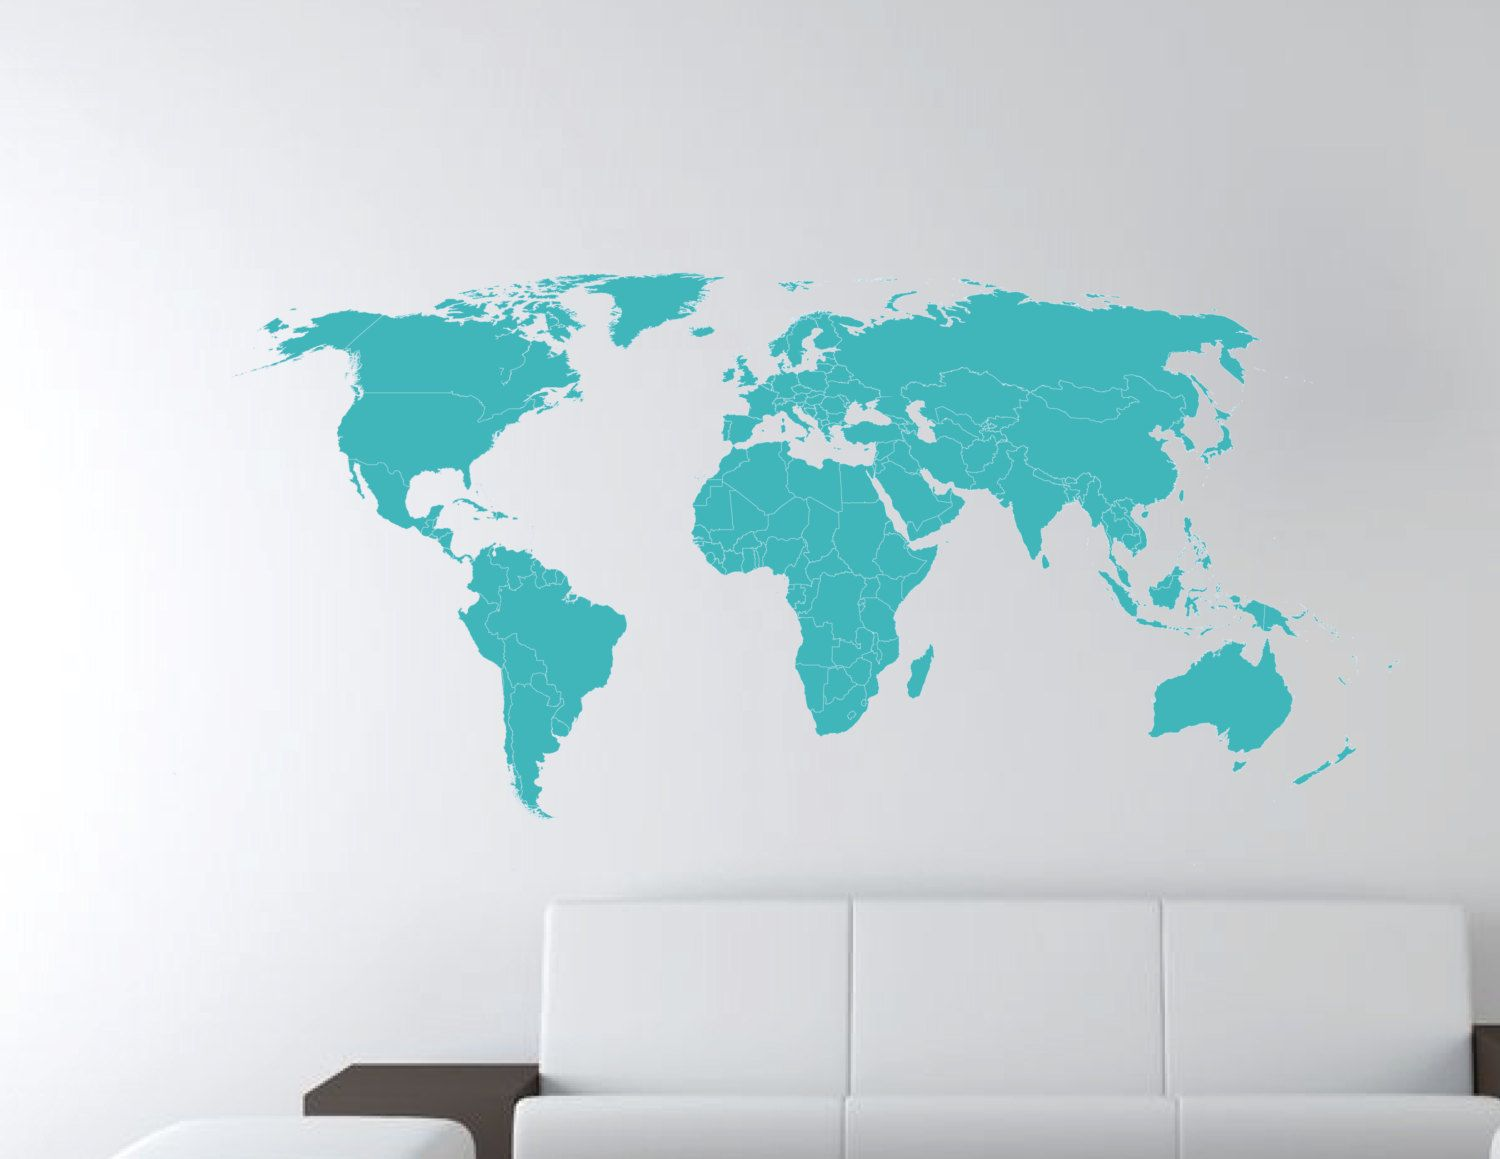 World map decal 49w wall decal wall sticker 3800 via etsy world map decal 49w wall decal wall sticker 3800 gumiabroncs Gallery